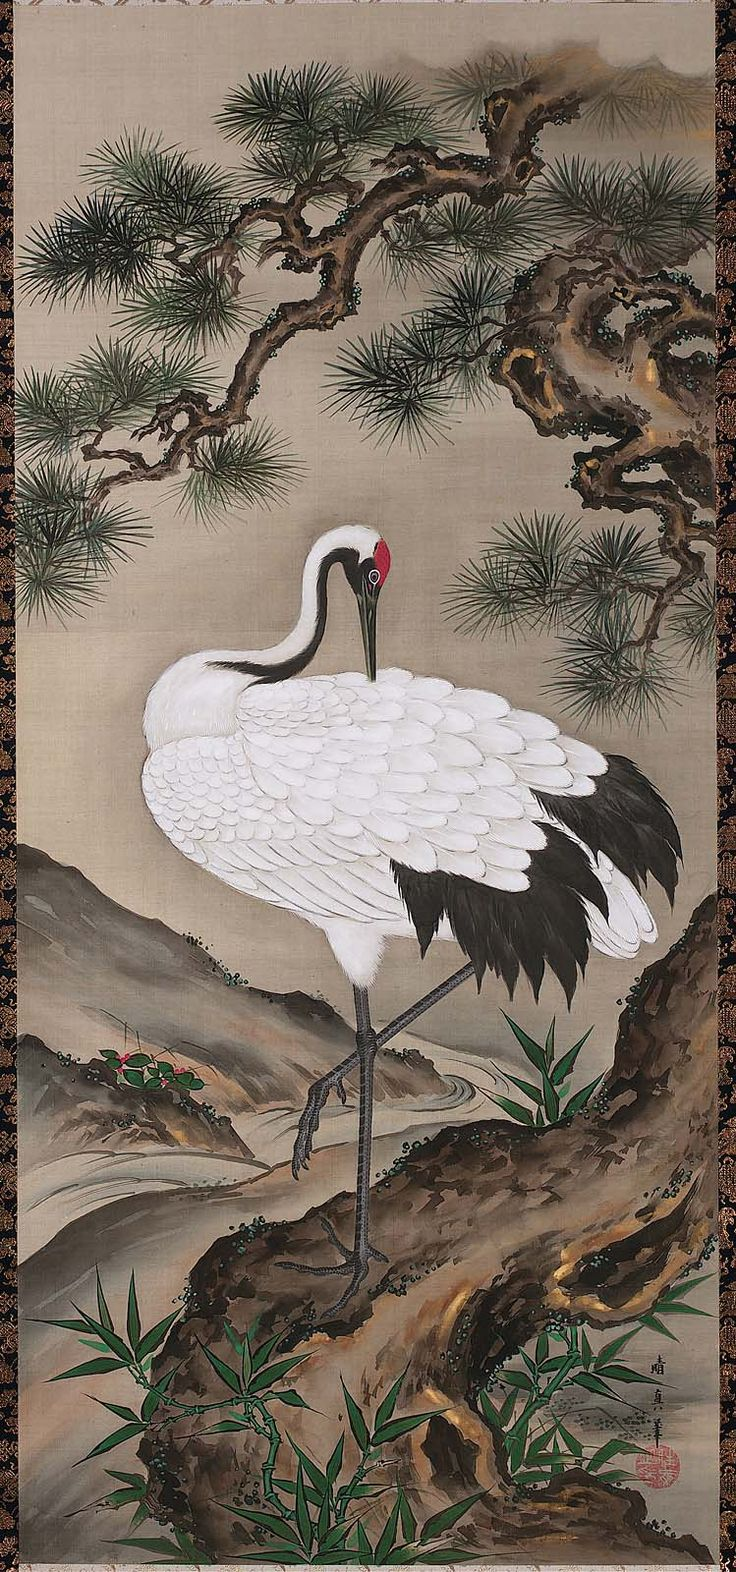 Crane with Pine Tree-Japanese Edo period mid-19th century Kamiya Seishin (Japanese, dates unknown)